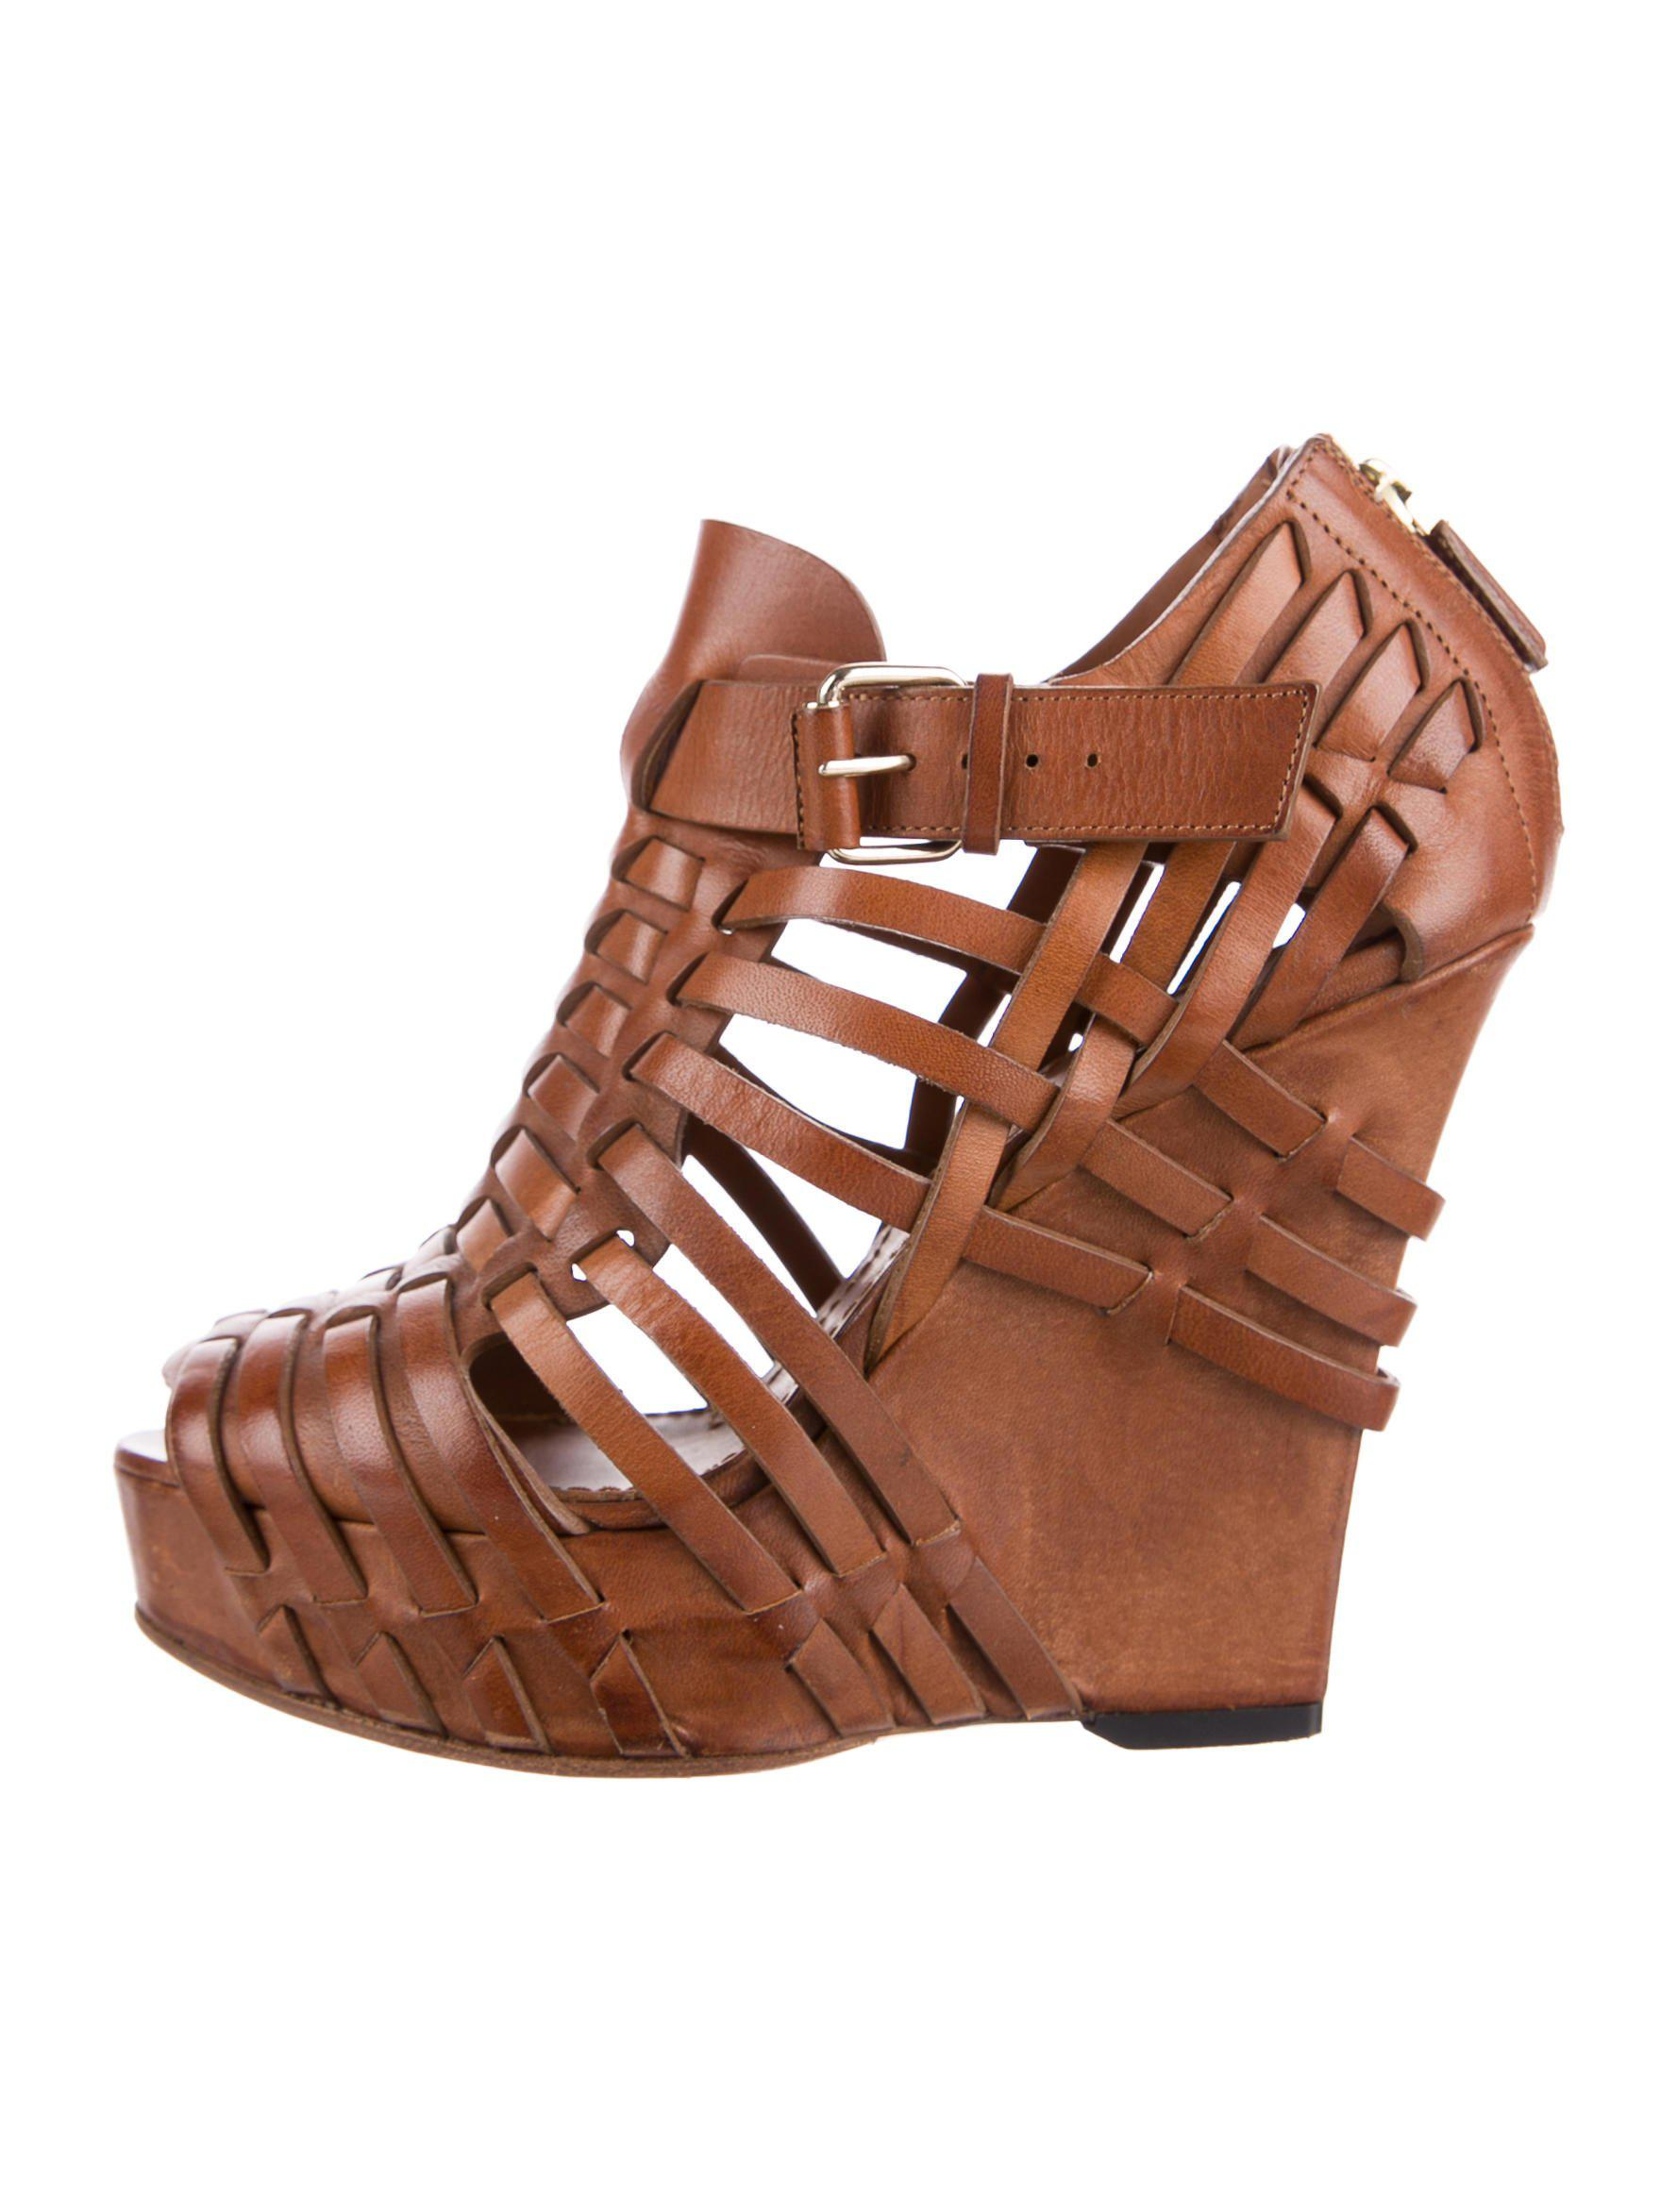 cheap sale purchase low price Givenchy Woven Leather Sandals sale factory outlet shop for sale online footlocker pictures online Y4KCYNzN